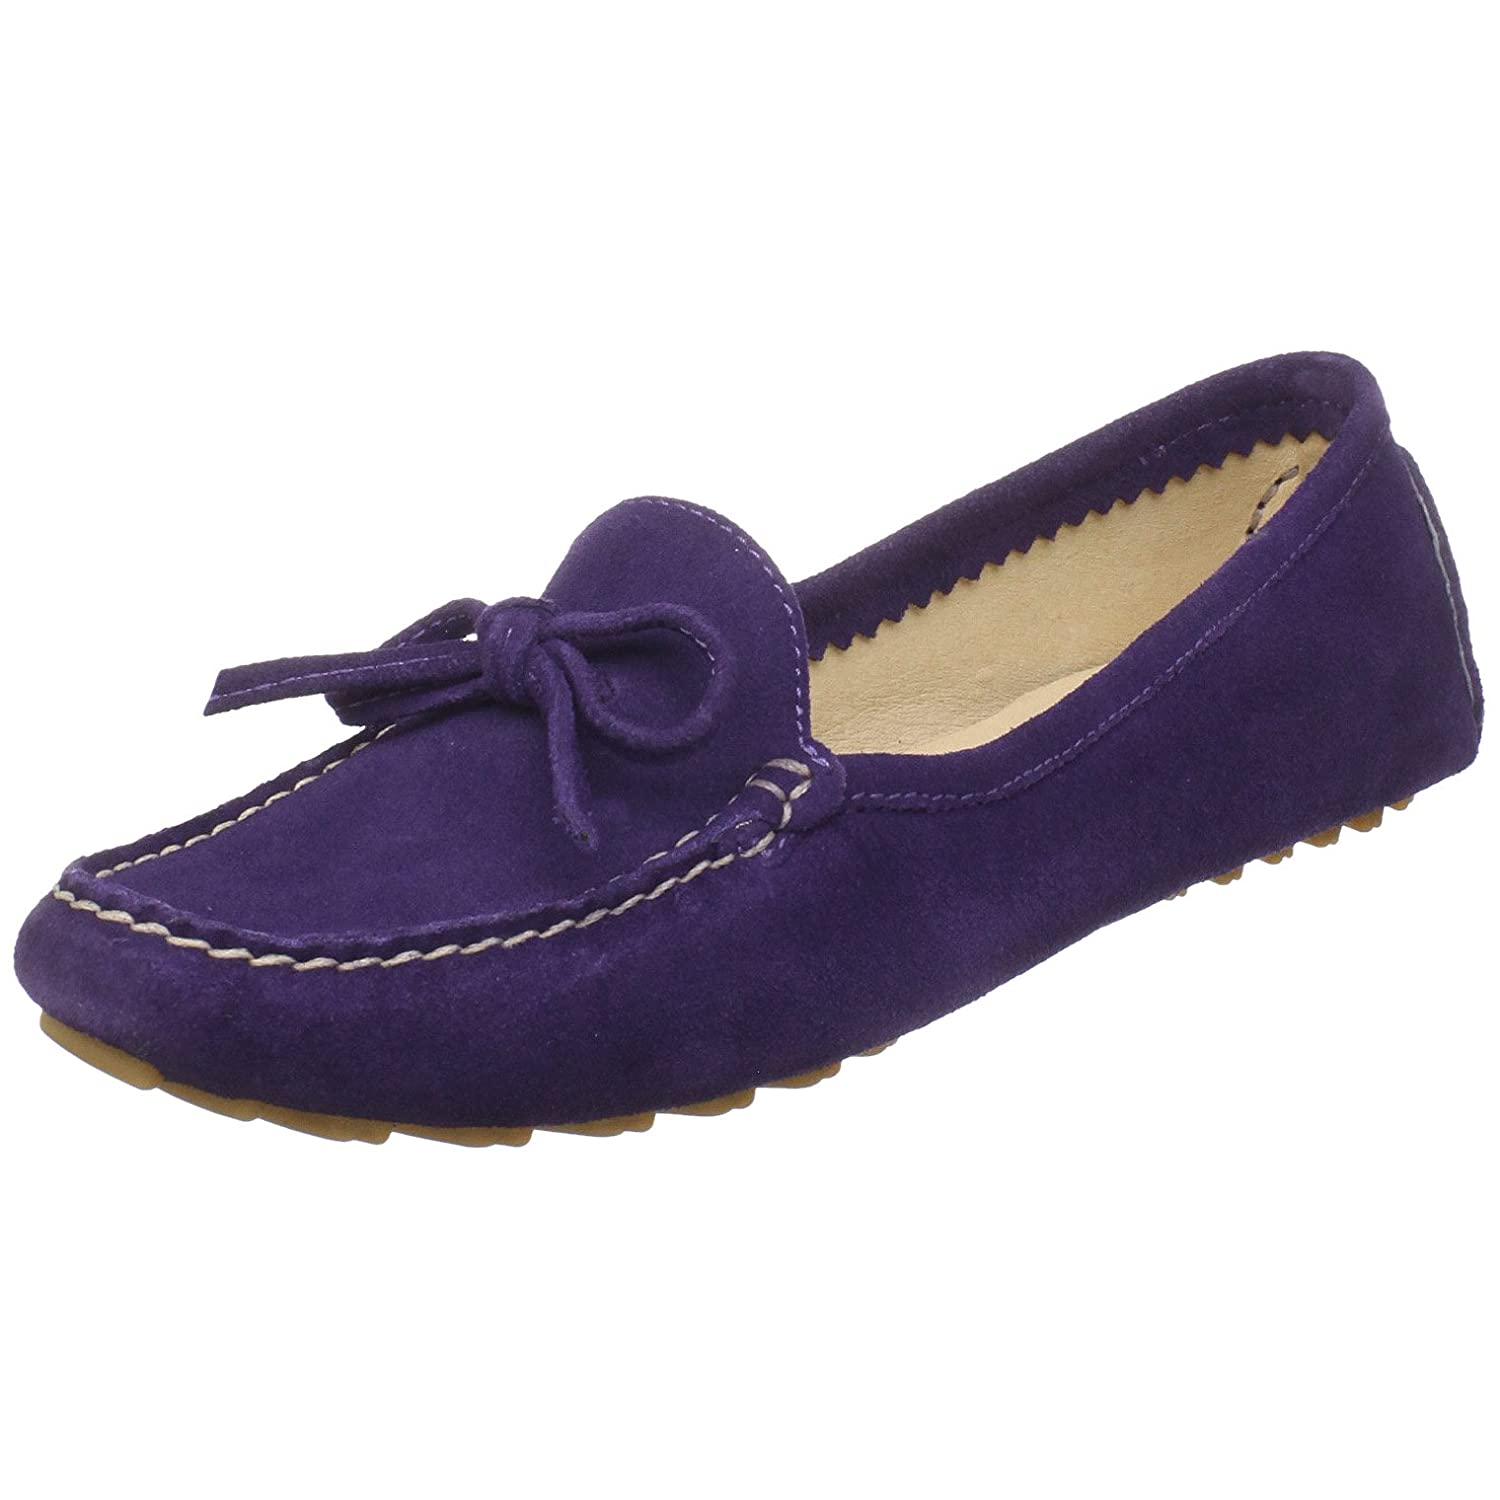 Amazon.com | Amiana Womens 15-A0642 Moccasin, Purple, 6 M US | Loafers & Slip-Ons